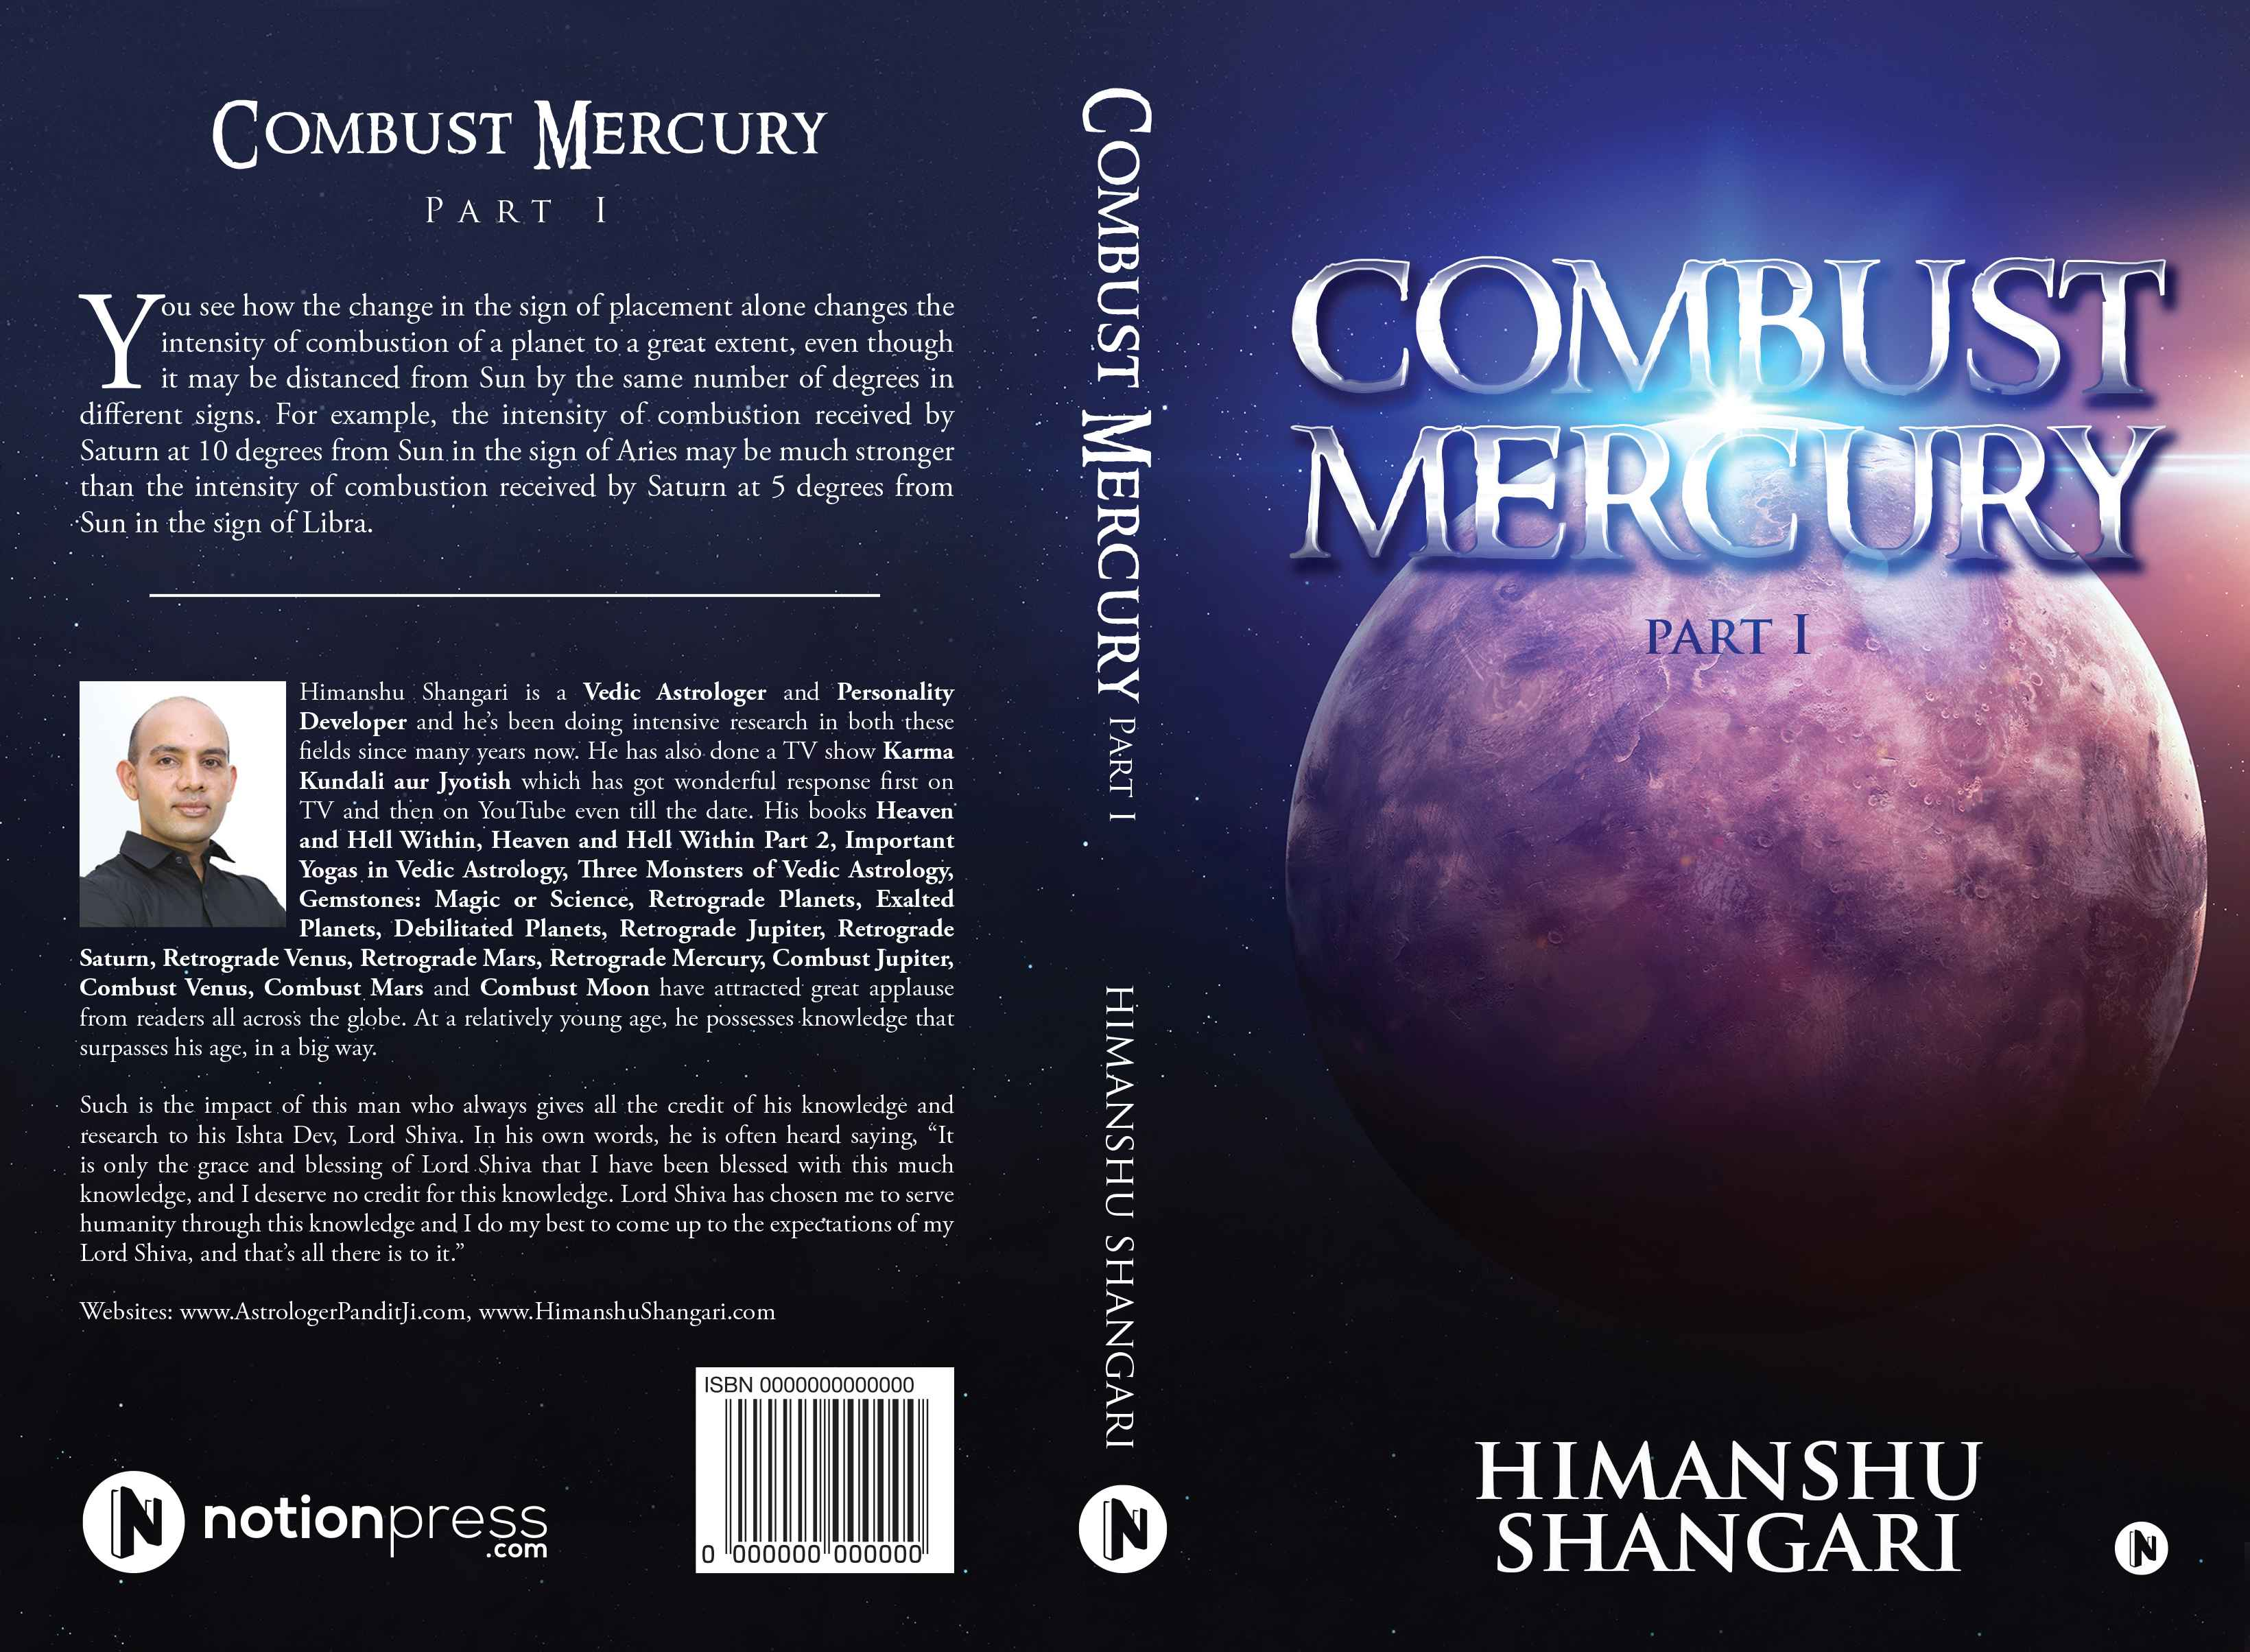 Combust Mercury Part 1